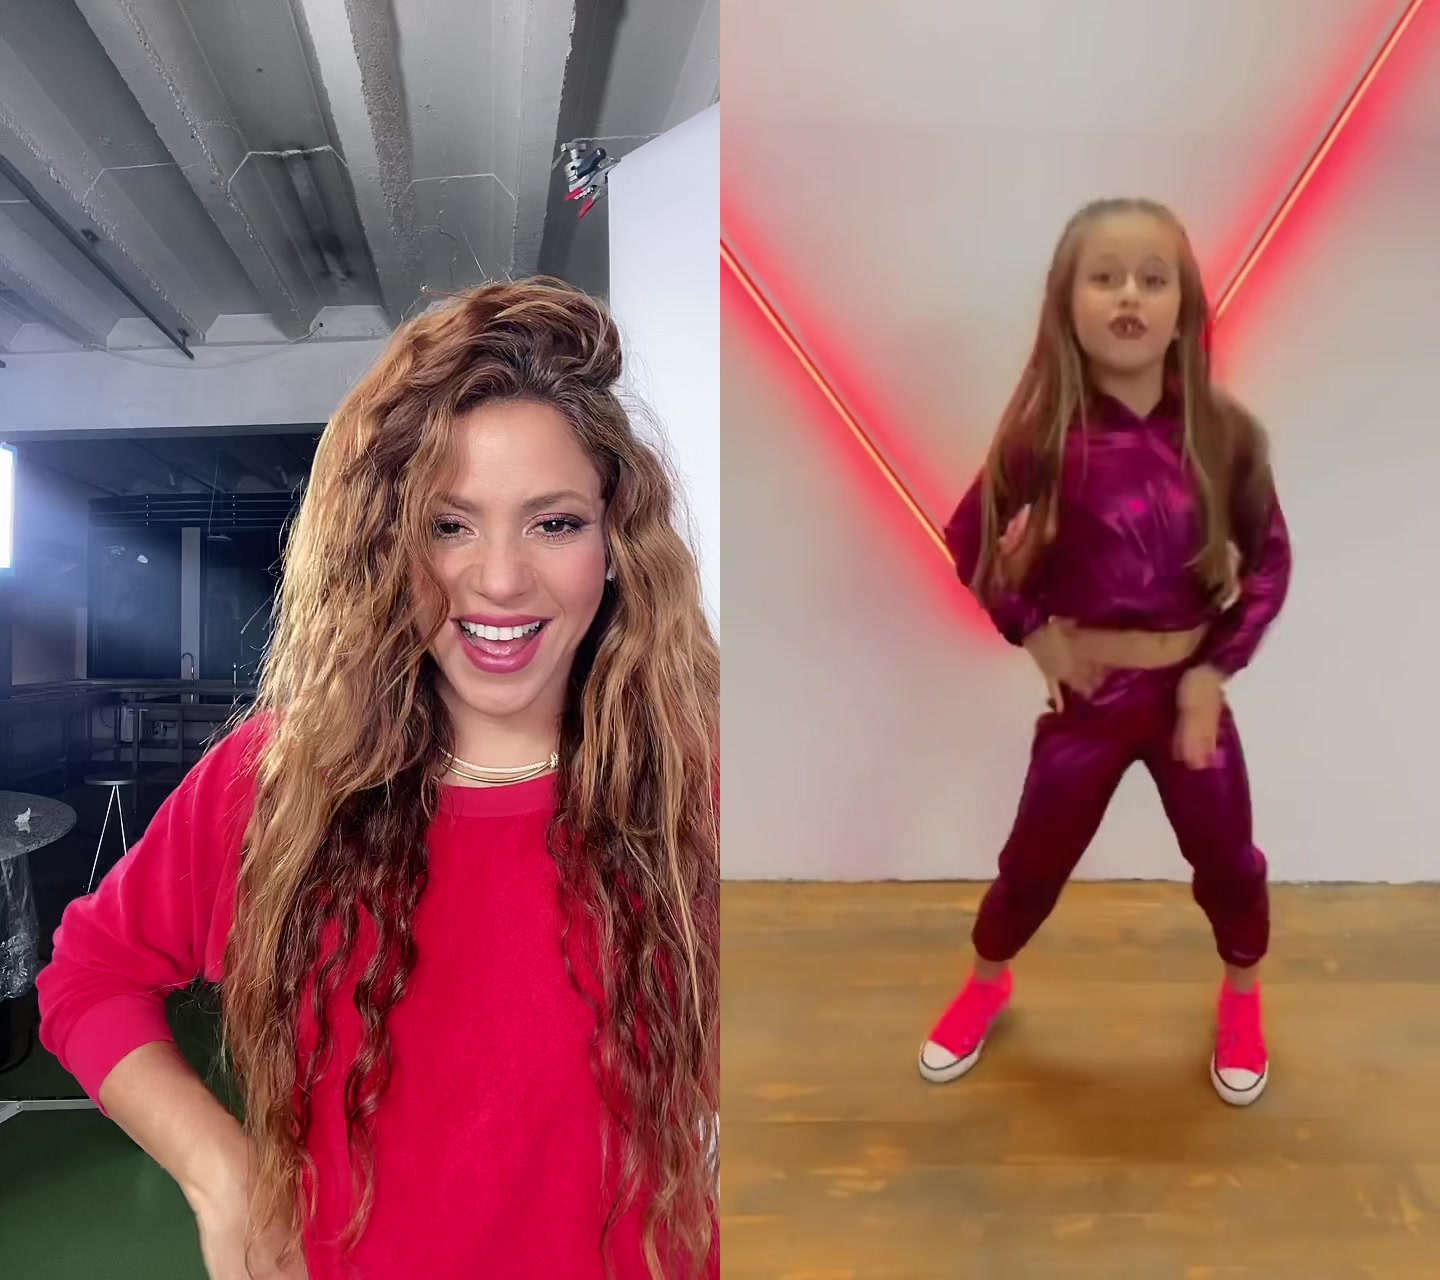 Video with title '#duet with @laviniagioia Que linda!!!!! 🥰✨♥️ #DontWaitUp'